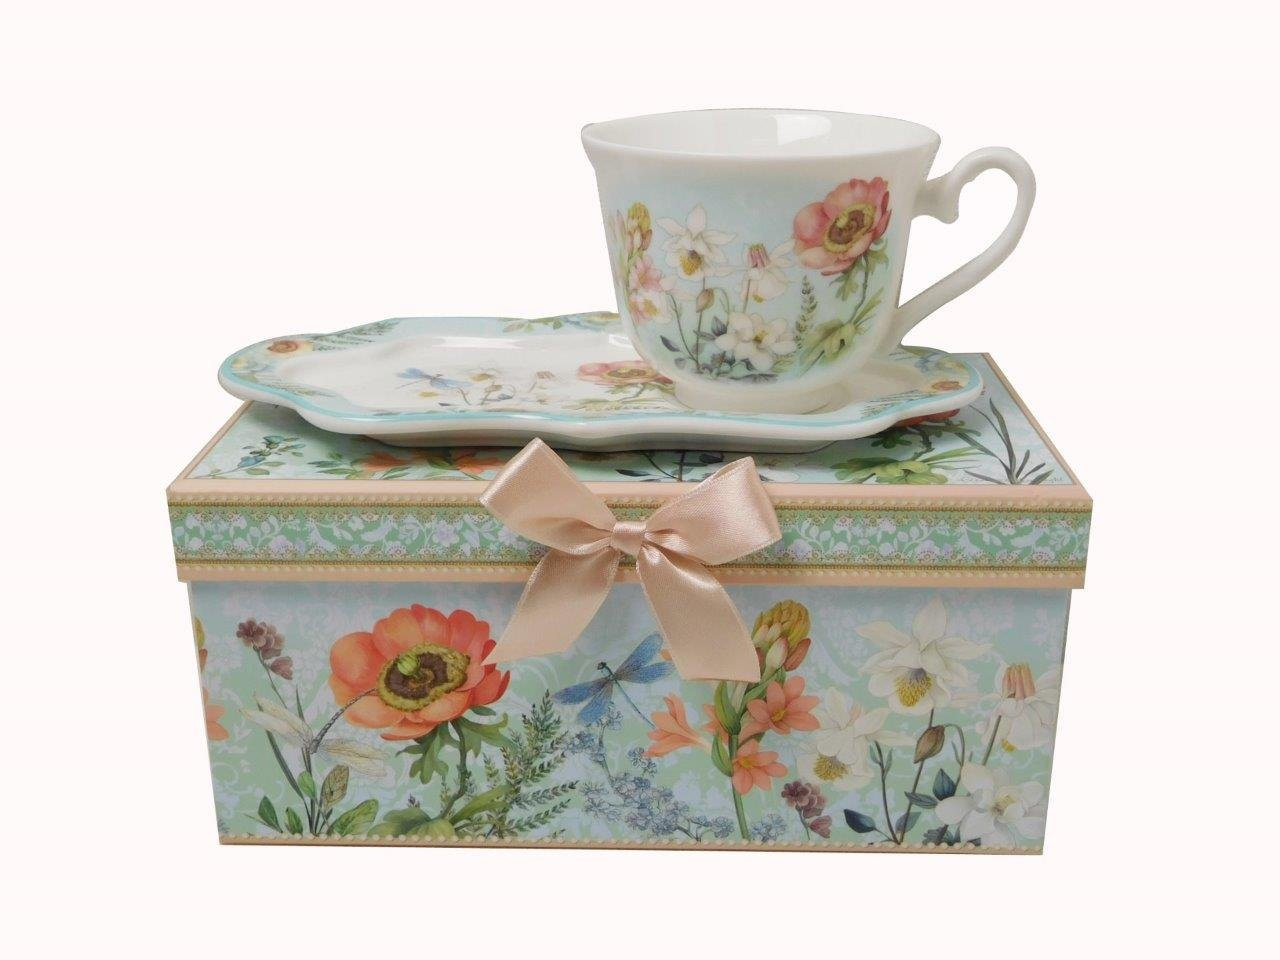 Lightahead New Bone China Unique Tea/Coffee Cup 10 oz and Snack Saucer Set in a Reusable Handmade Gift Box with Ribbon elegant floral design in attractive gift box Lightahead®